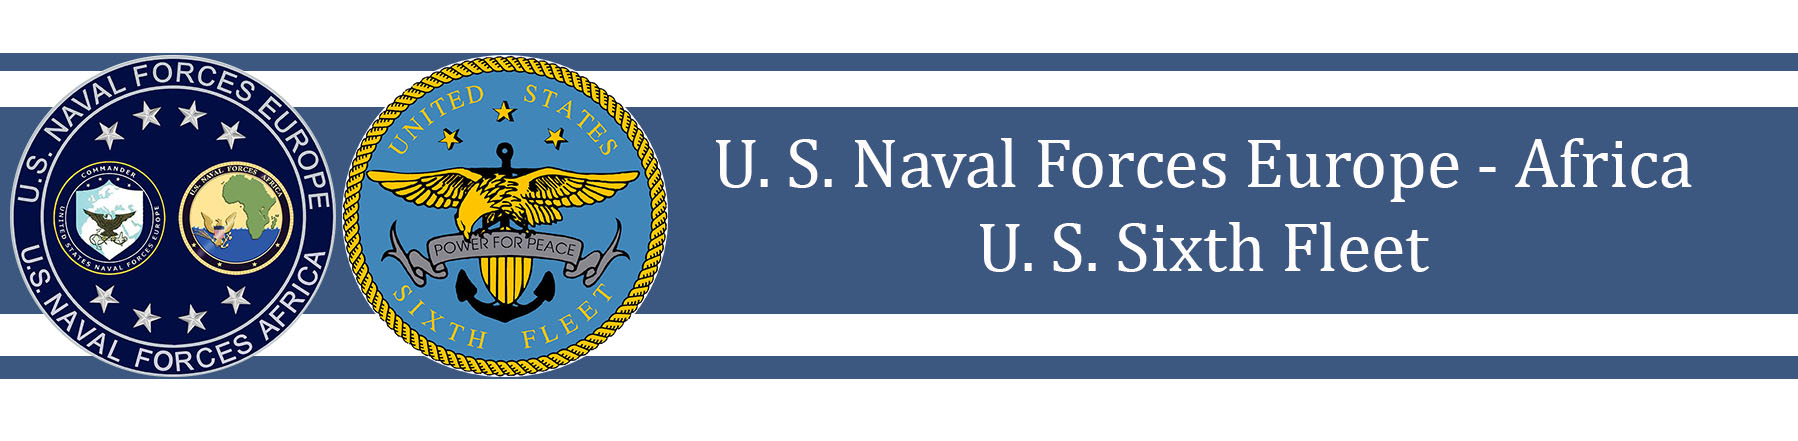 U.S. Naval Forces Europe - Africa / U.S. Sixth Fleet